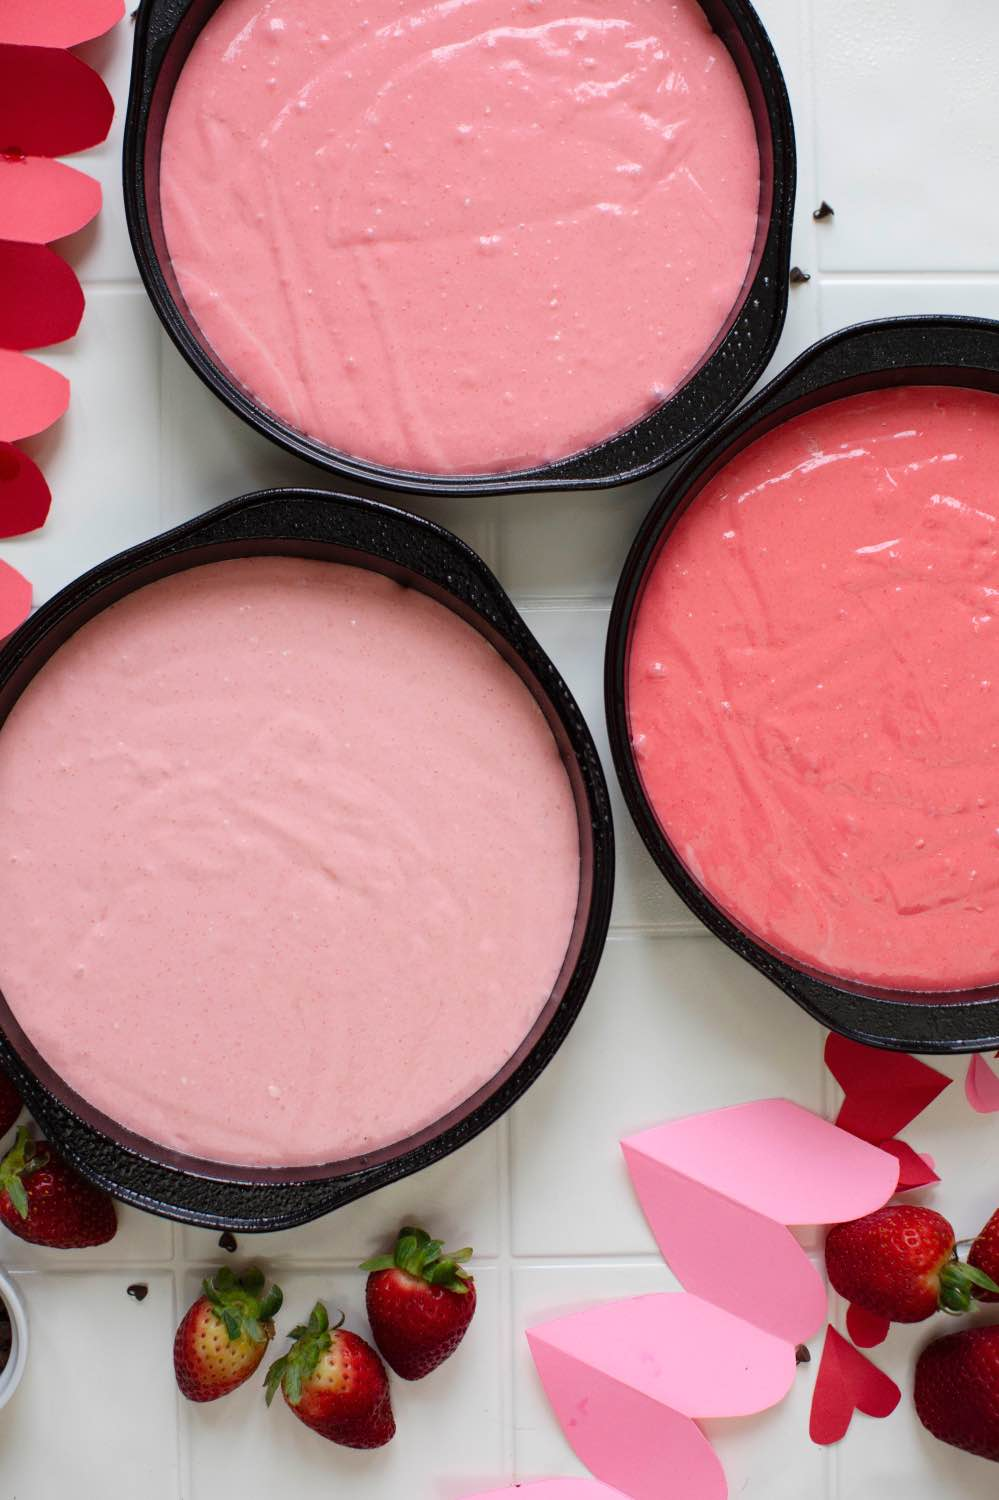 pink ombre strawberry cake color variation before baking